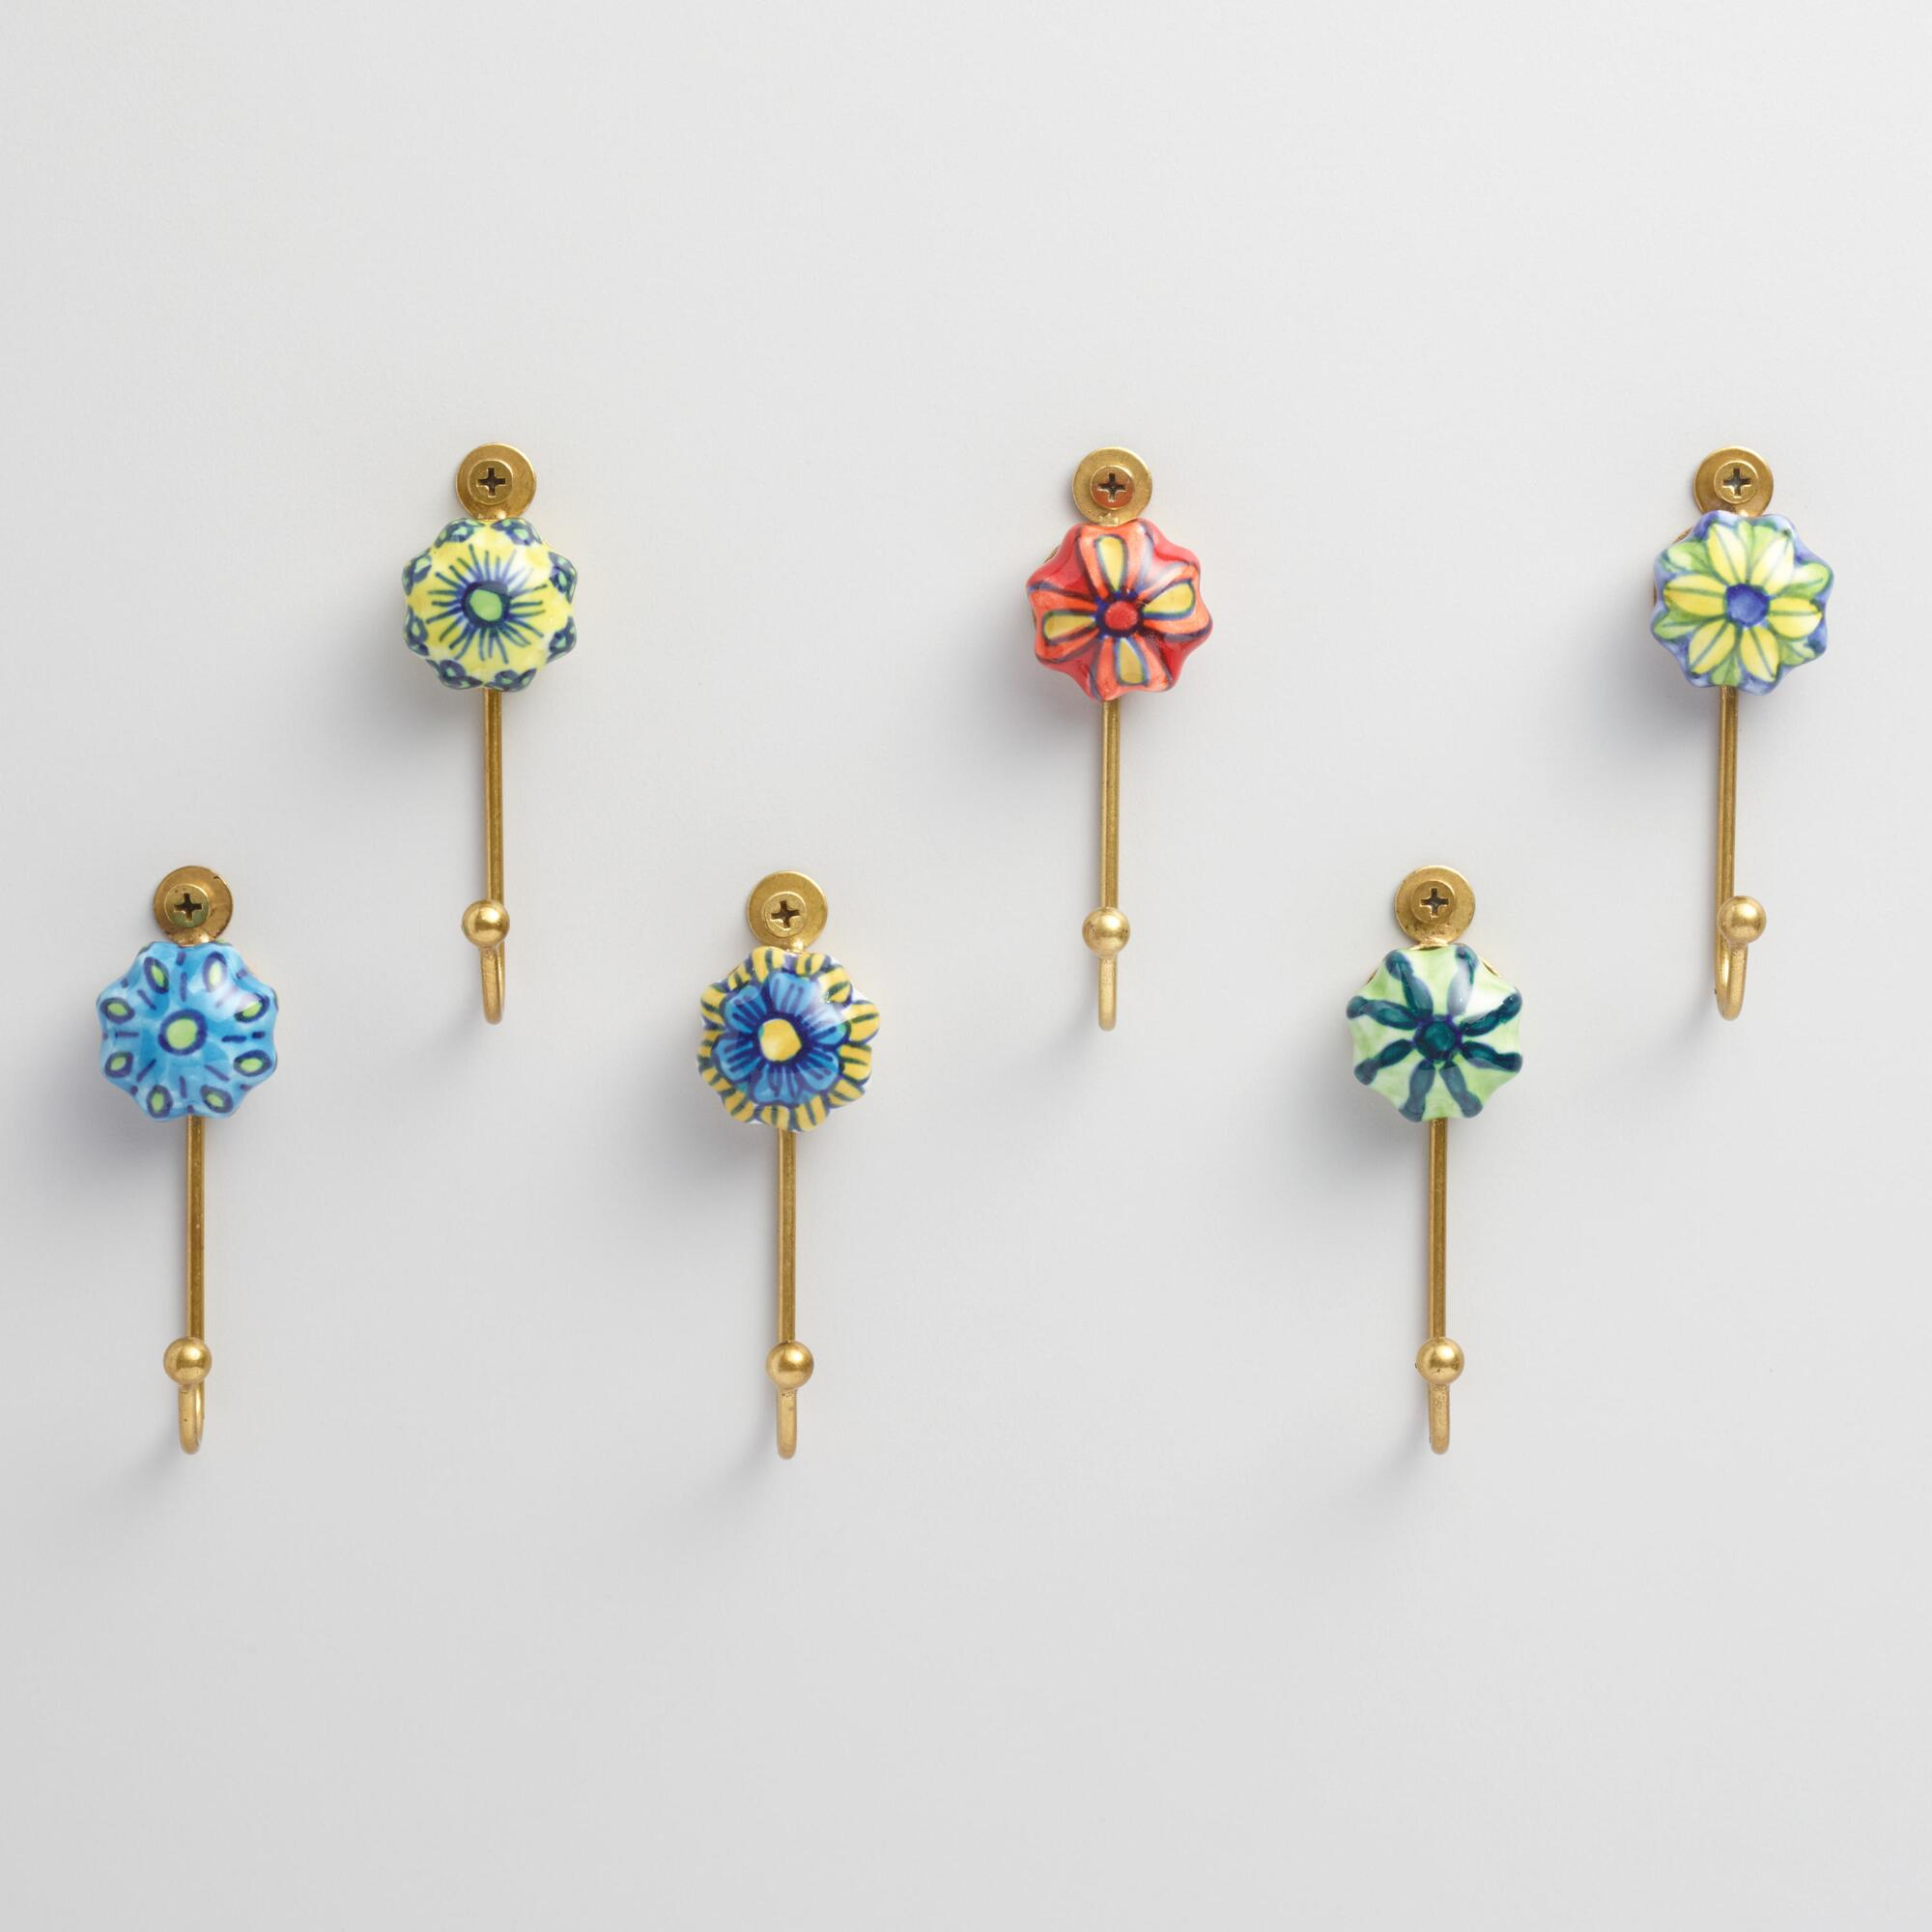 this is the related images of Ceramic Wall Hooks